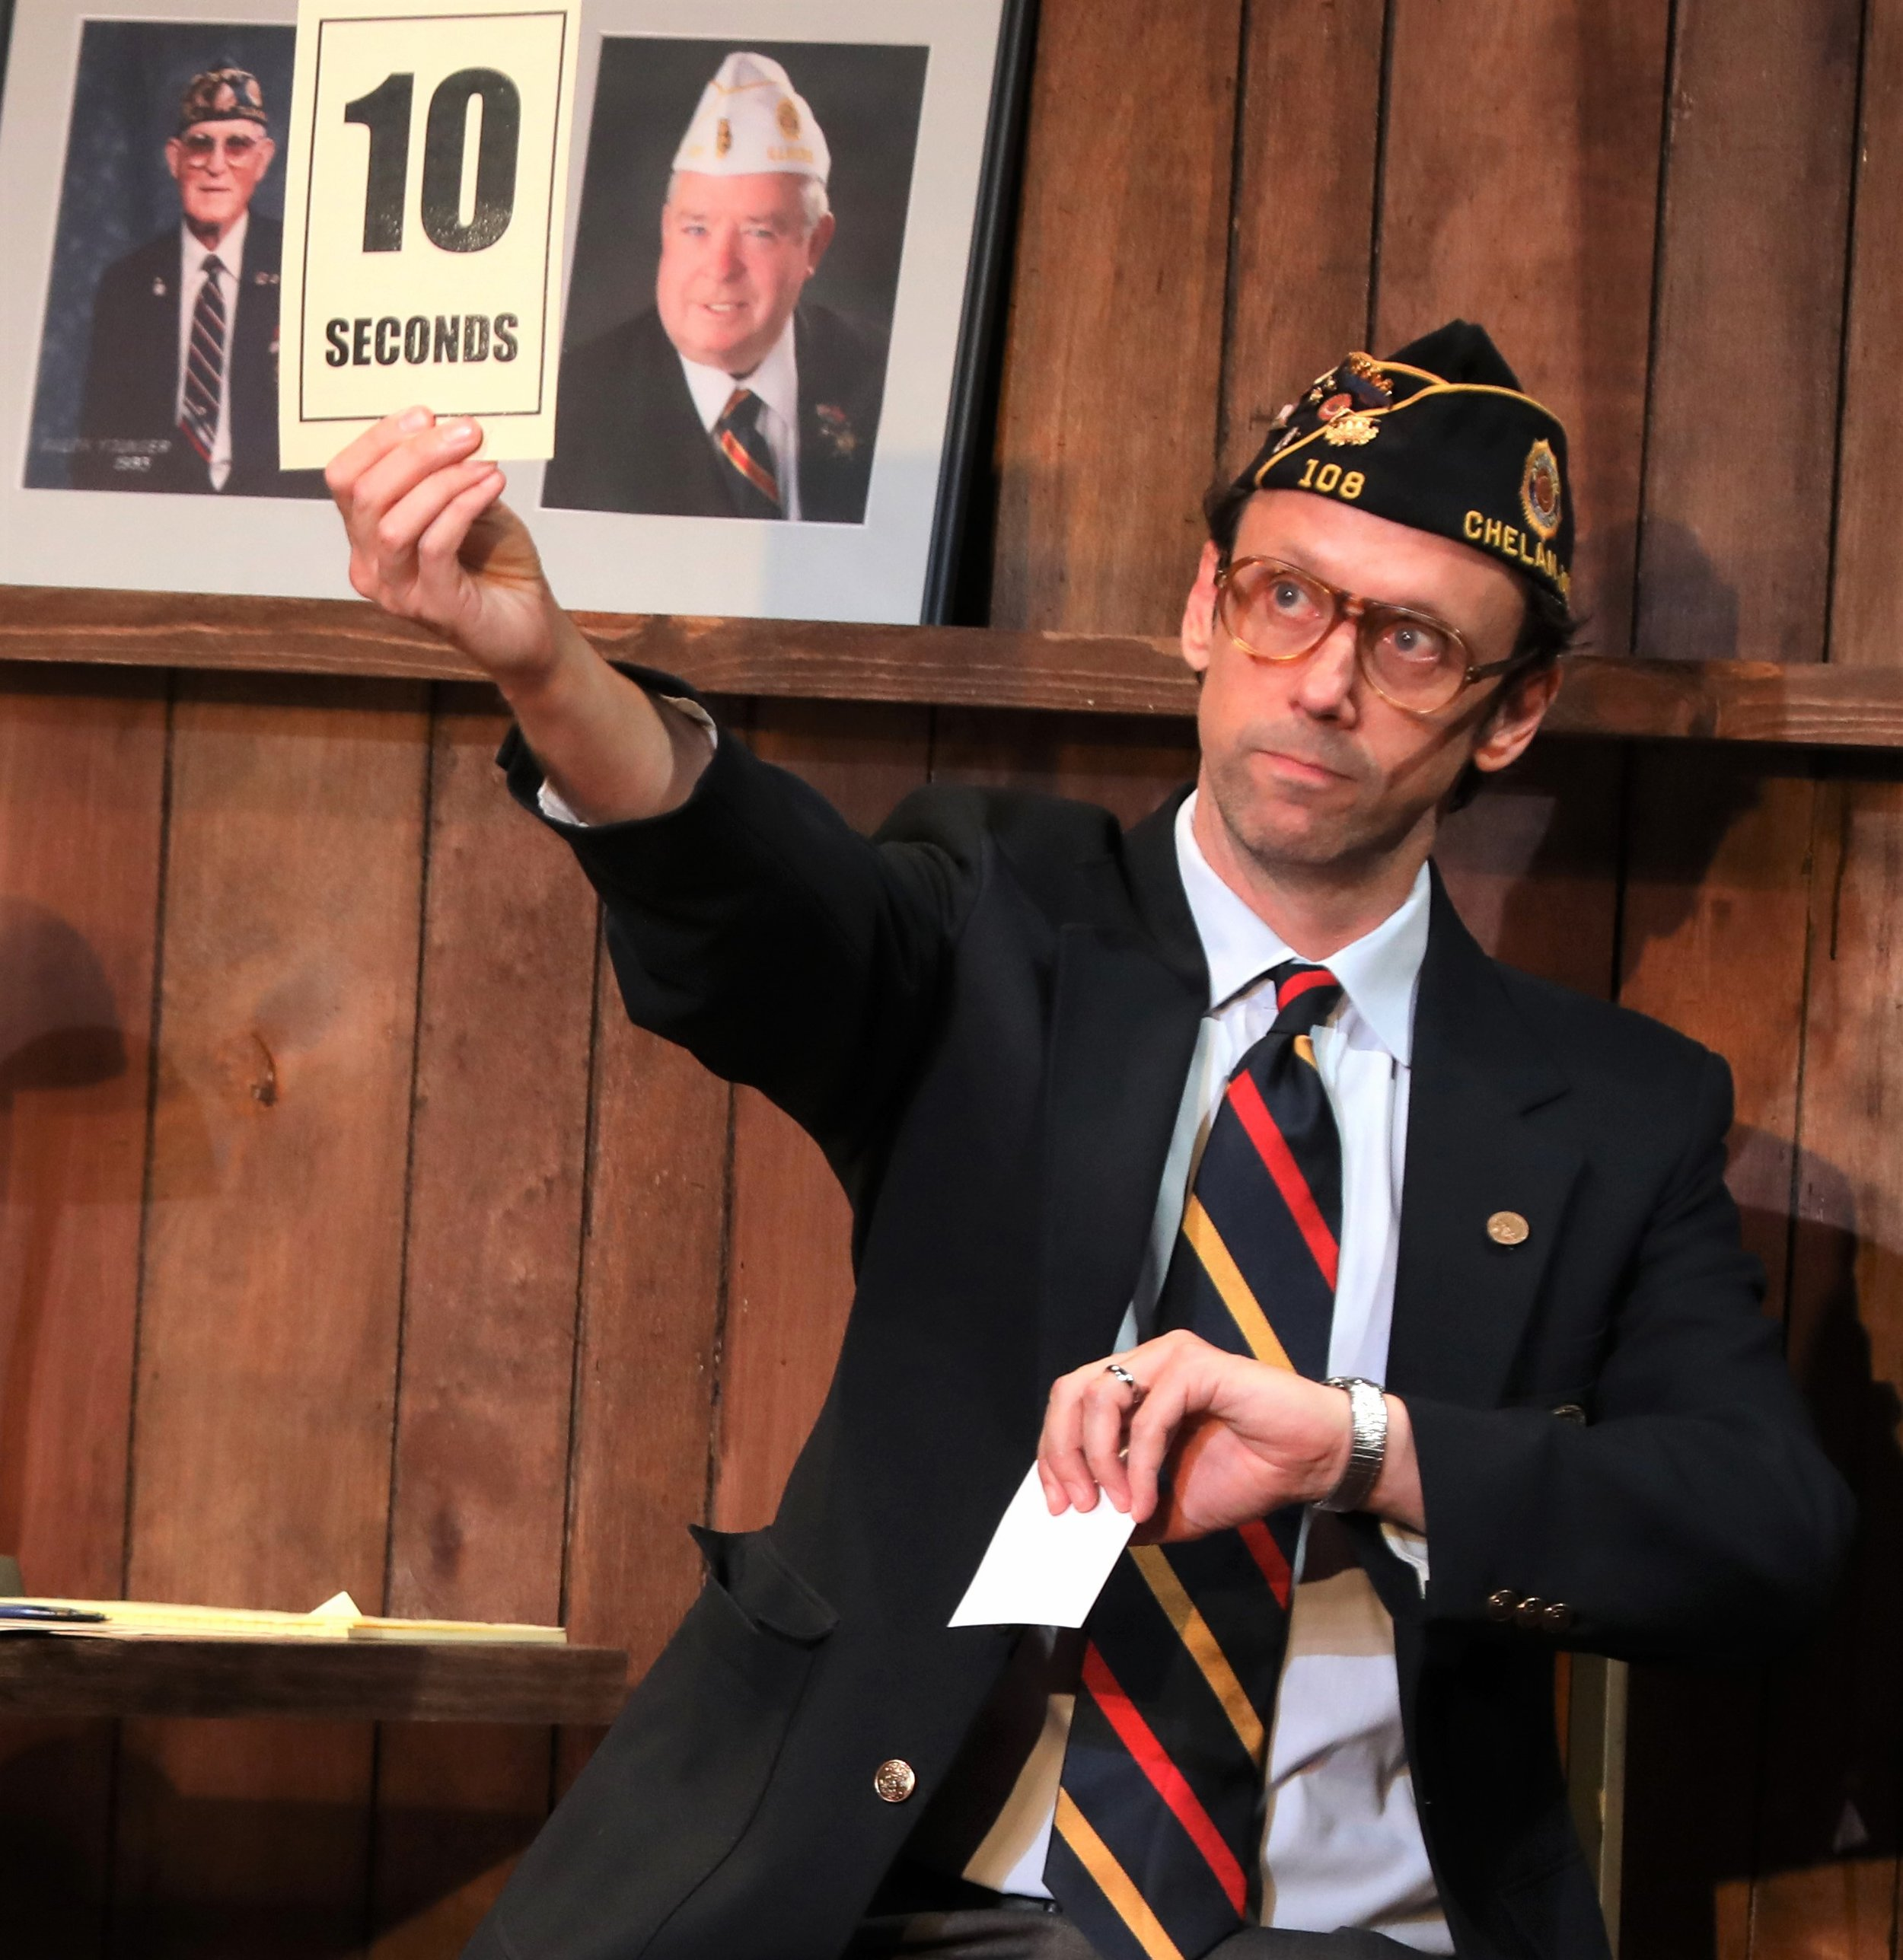 Mike Iveson as a member of the American Legion in  What the Constitution Means to Me . Top: Heidi Schreck makes the political personal.